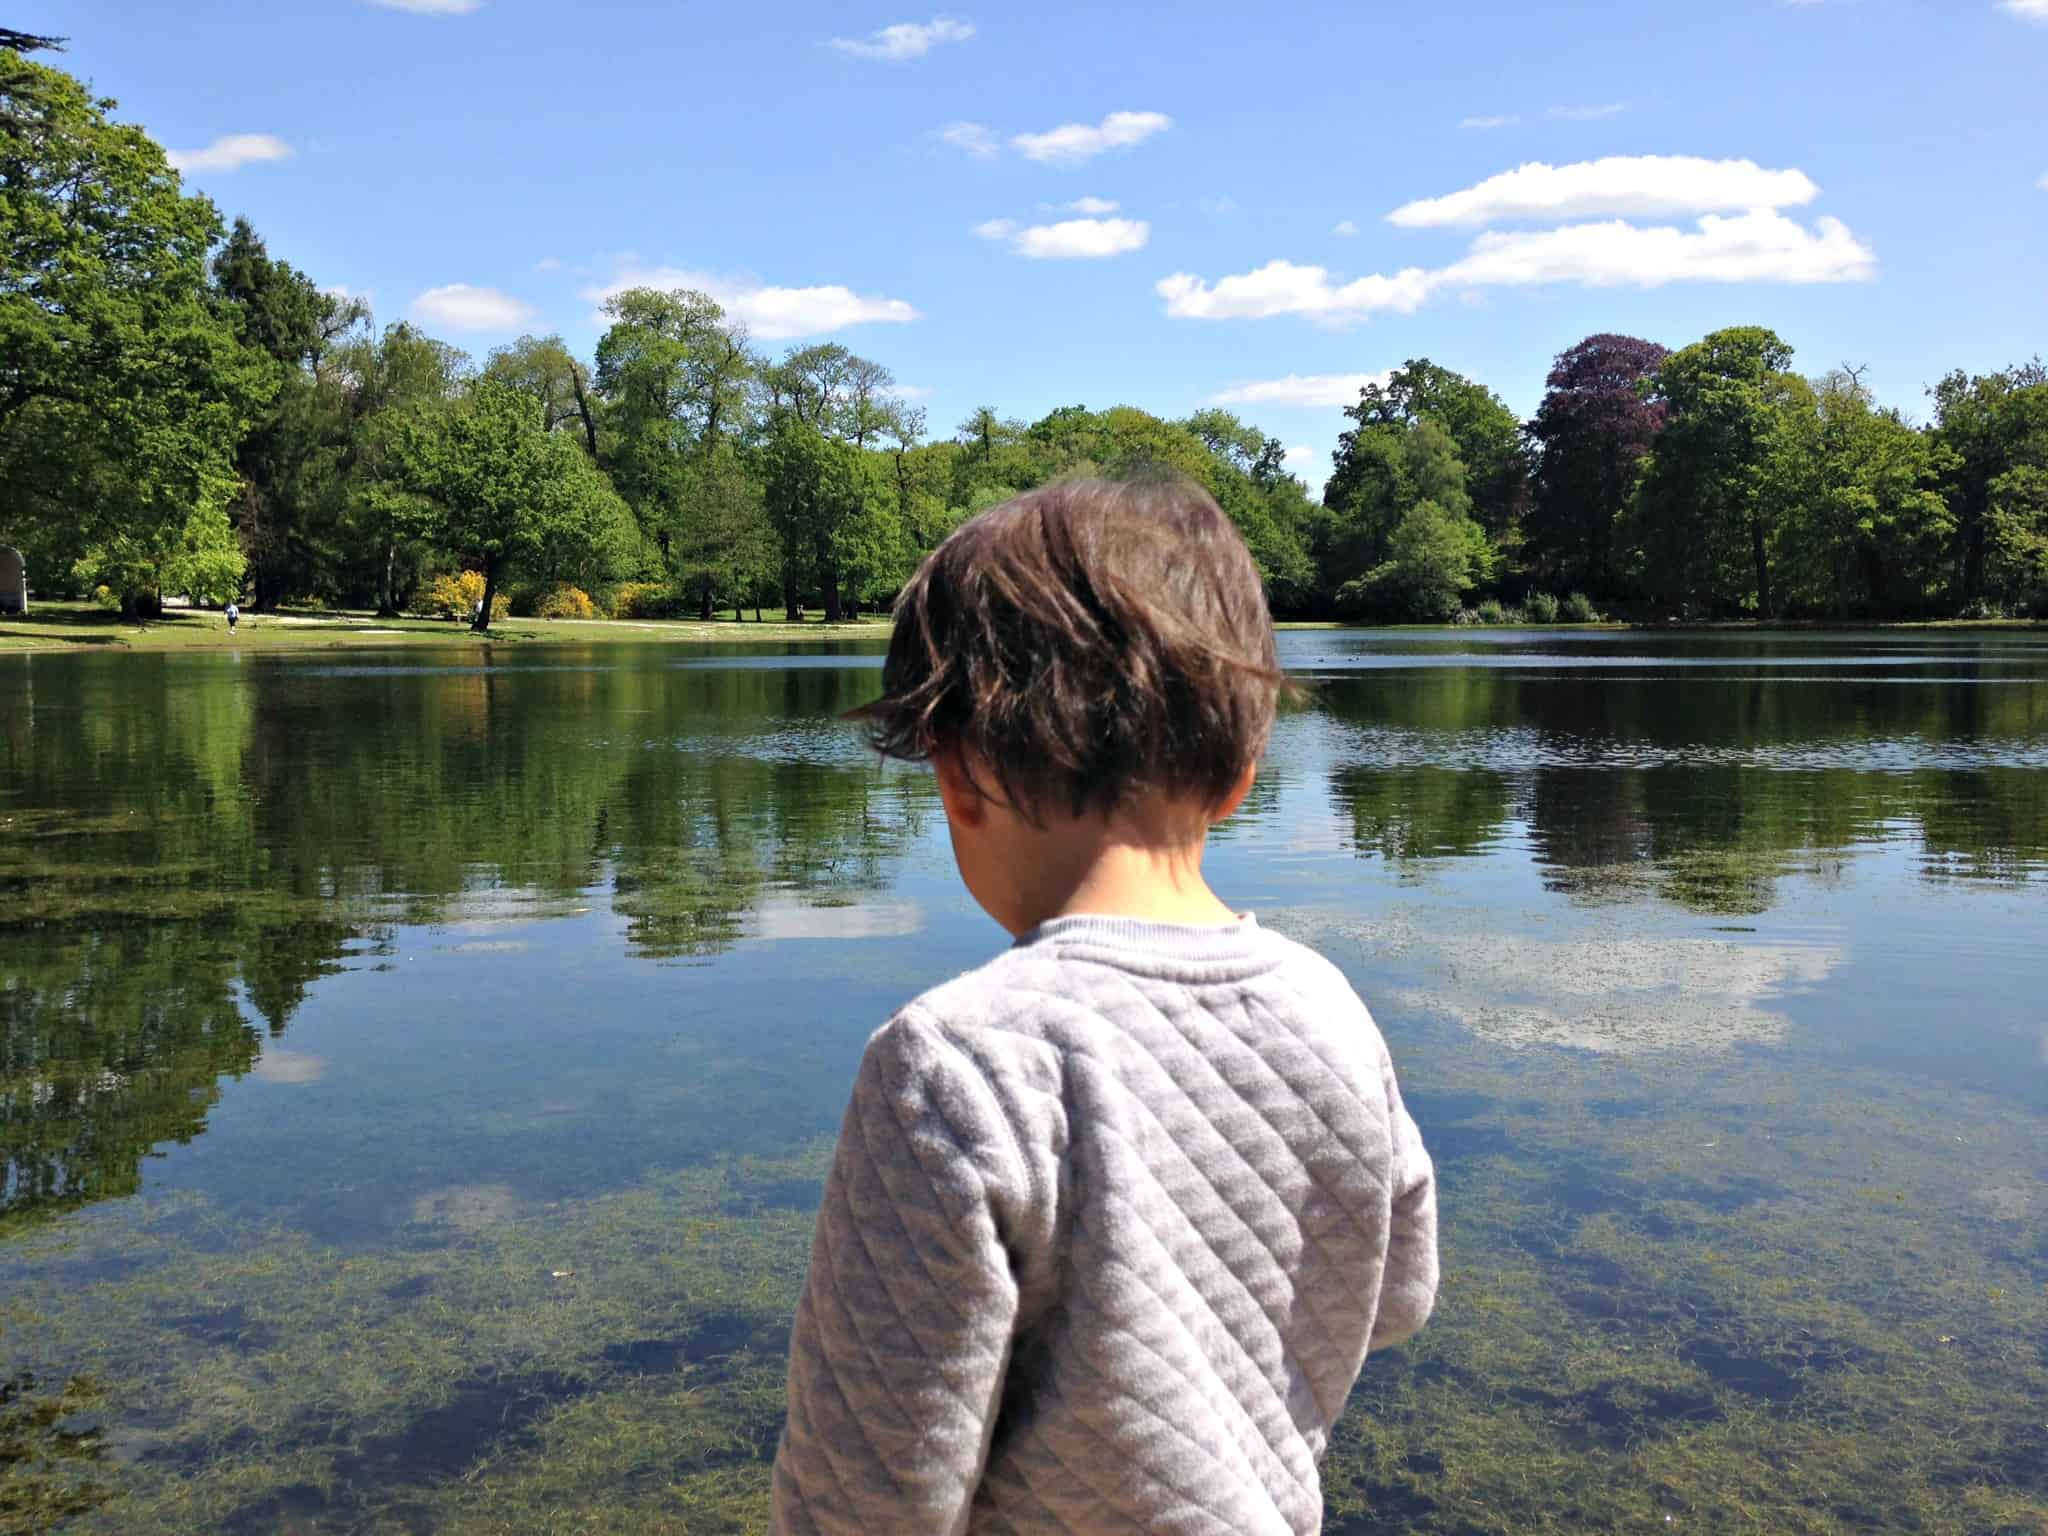 The lake at National Trust's Claremont Gardens in Surrey My Travel Monkey